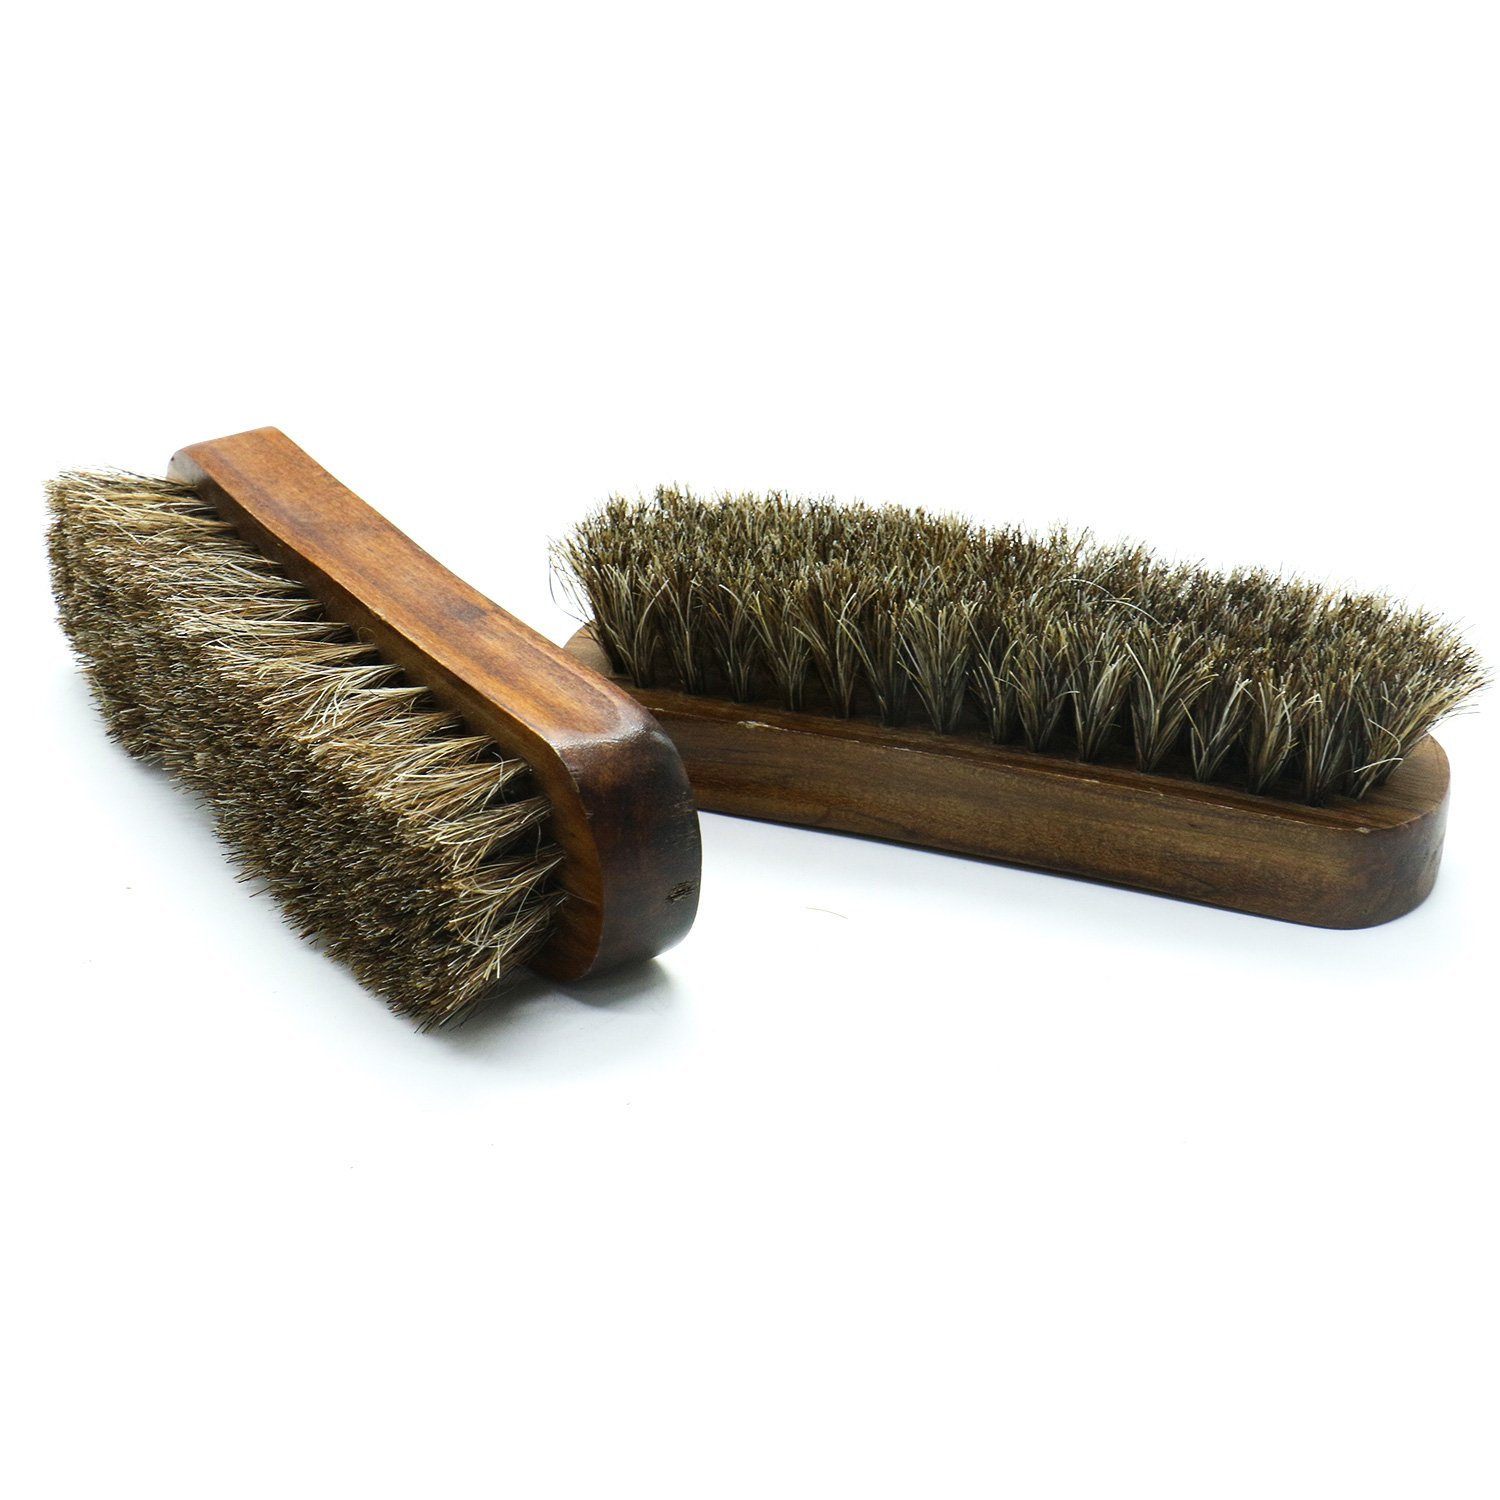 HUELE 2 Pack Horsehair Shoe Shine Brushes with Wooden Handle Horse Hair Bristles for Boots, Shoes & Other Leather Care(Brown)